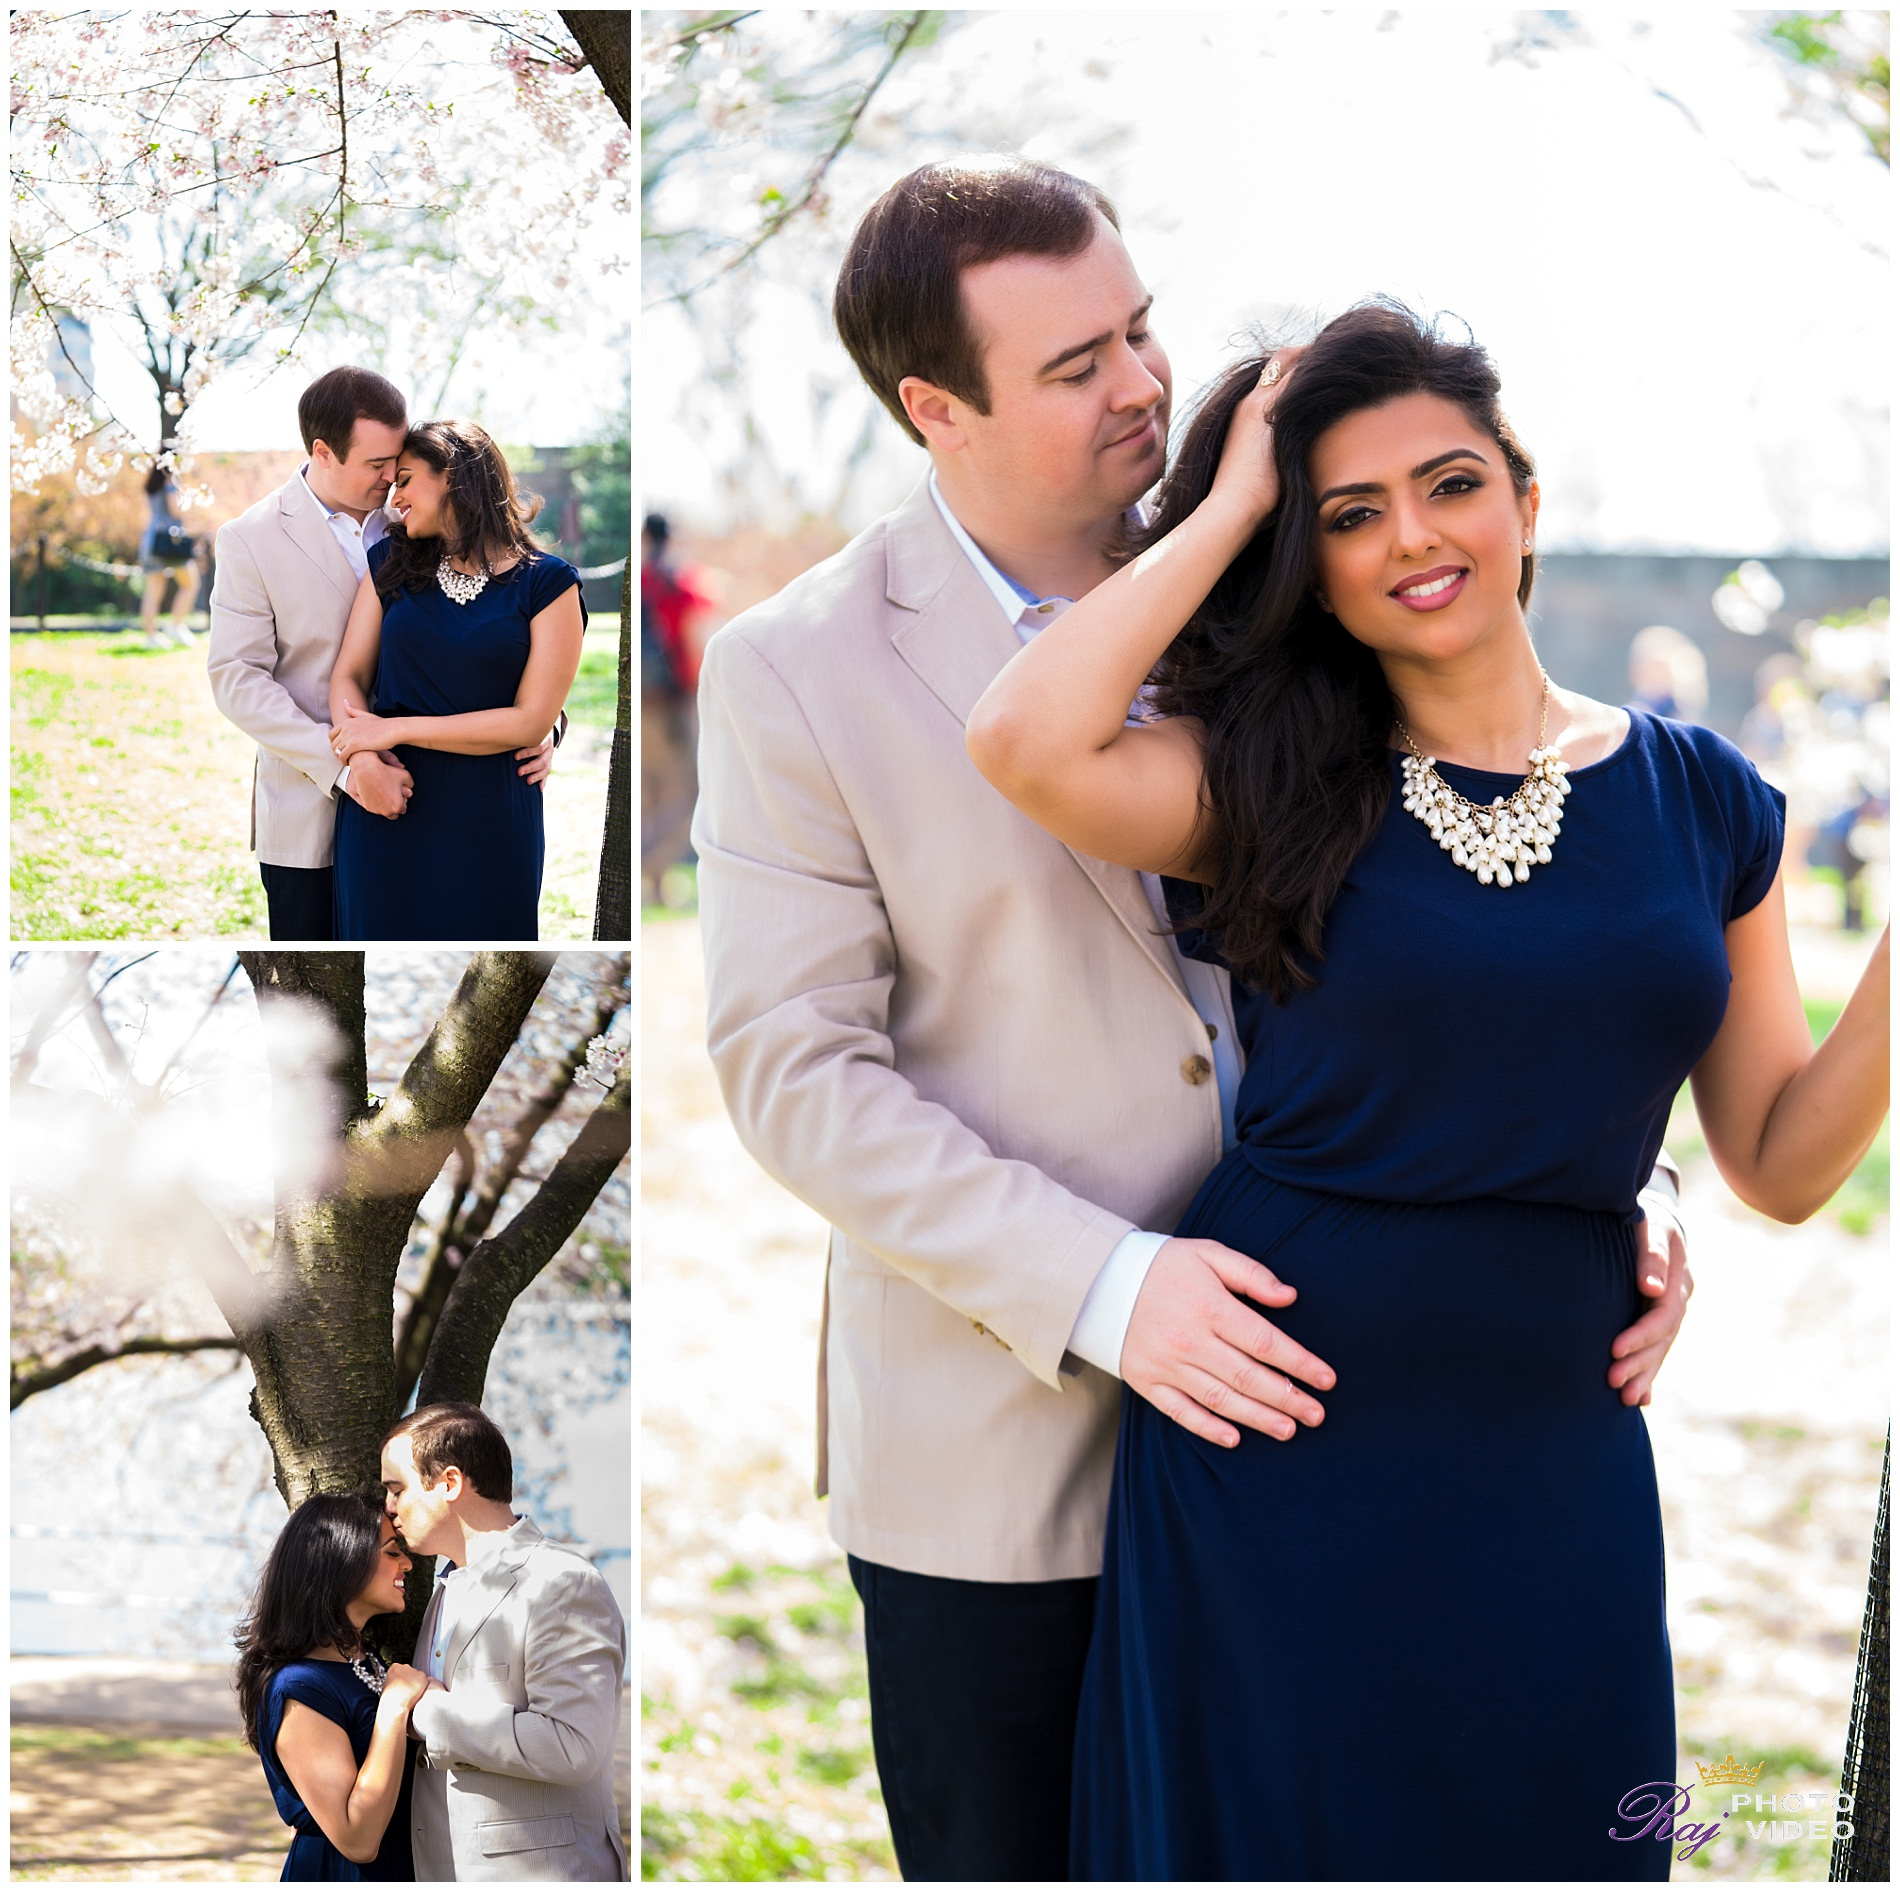 National-Cherry-Blossom-Festival-Washington-DC-Engagement-Shoot-Aditi-Peter-10.jpg